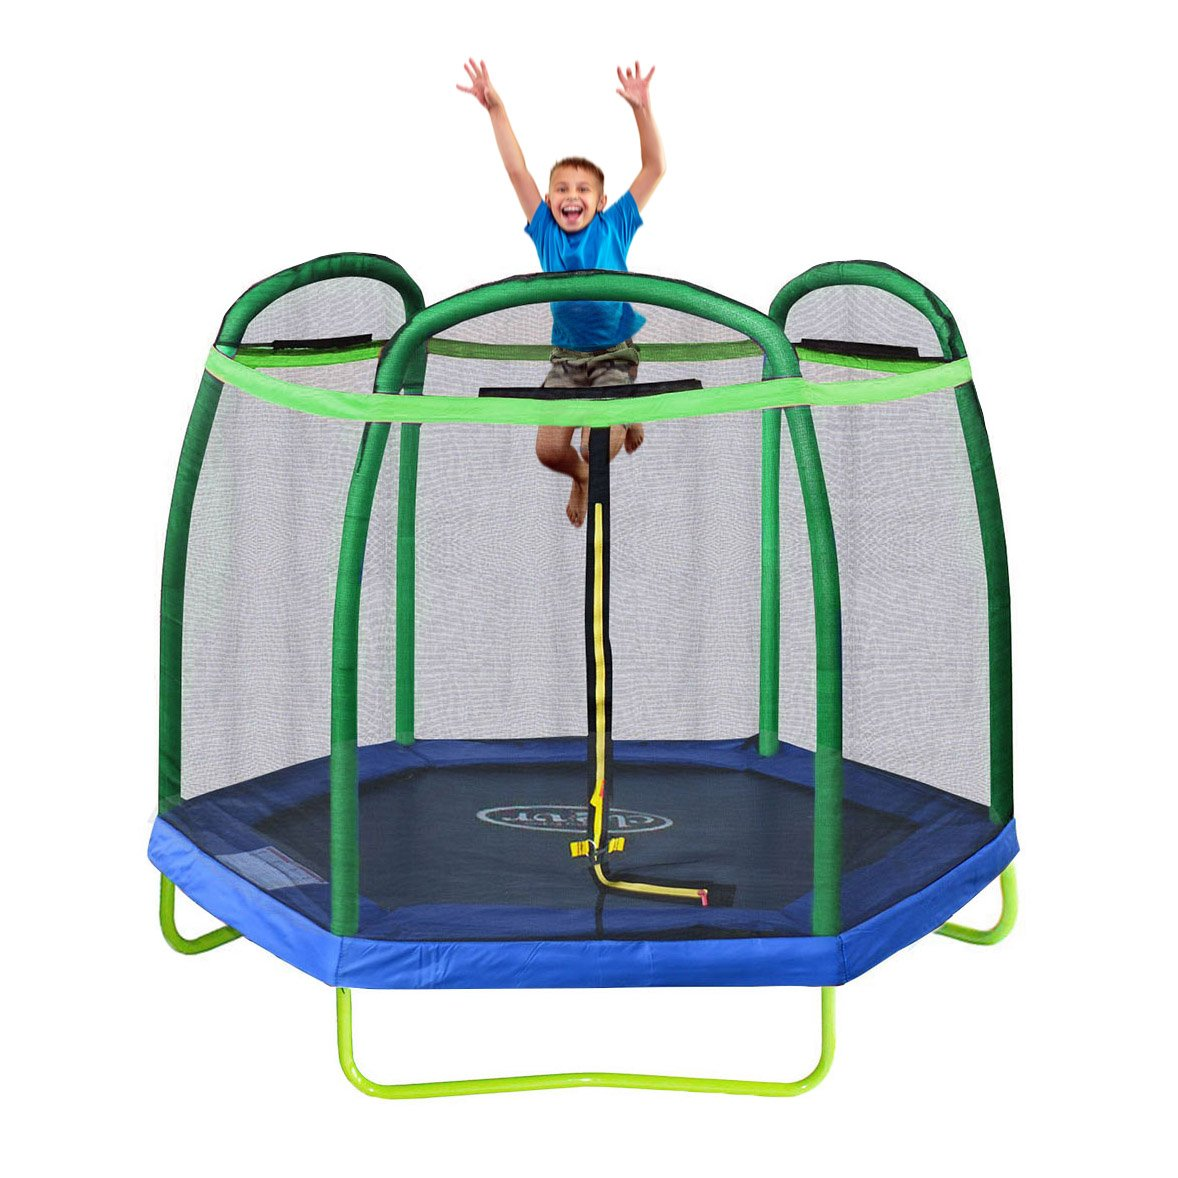 Clevr 7ft Kids Trampoline with Safety Enclosure Net & Spring Pad, 7-Foot Outdoor Round Bounce Jumper 84'' Indoor/Outdoor, Built-in Zipper Heavy Duty Frame, Green and Blue | Great Birthday Gift by Clevr (Image #6)